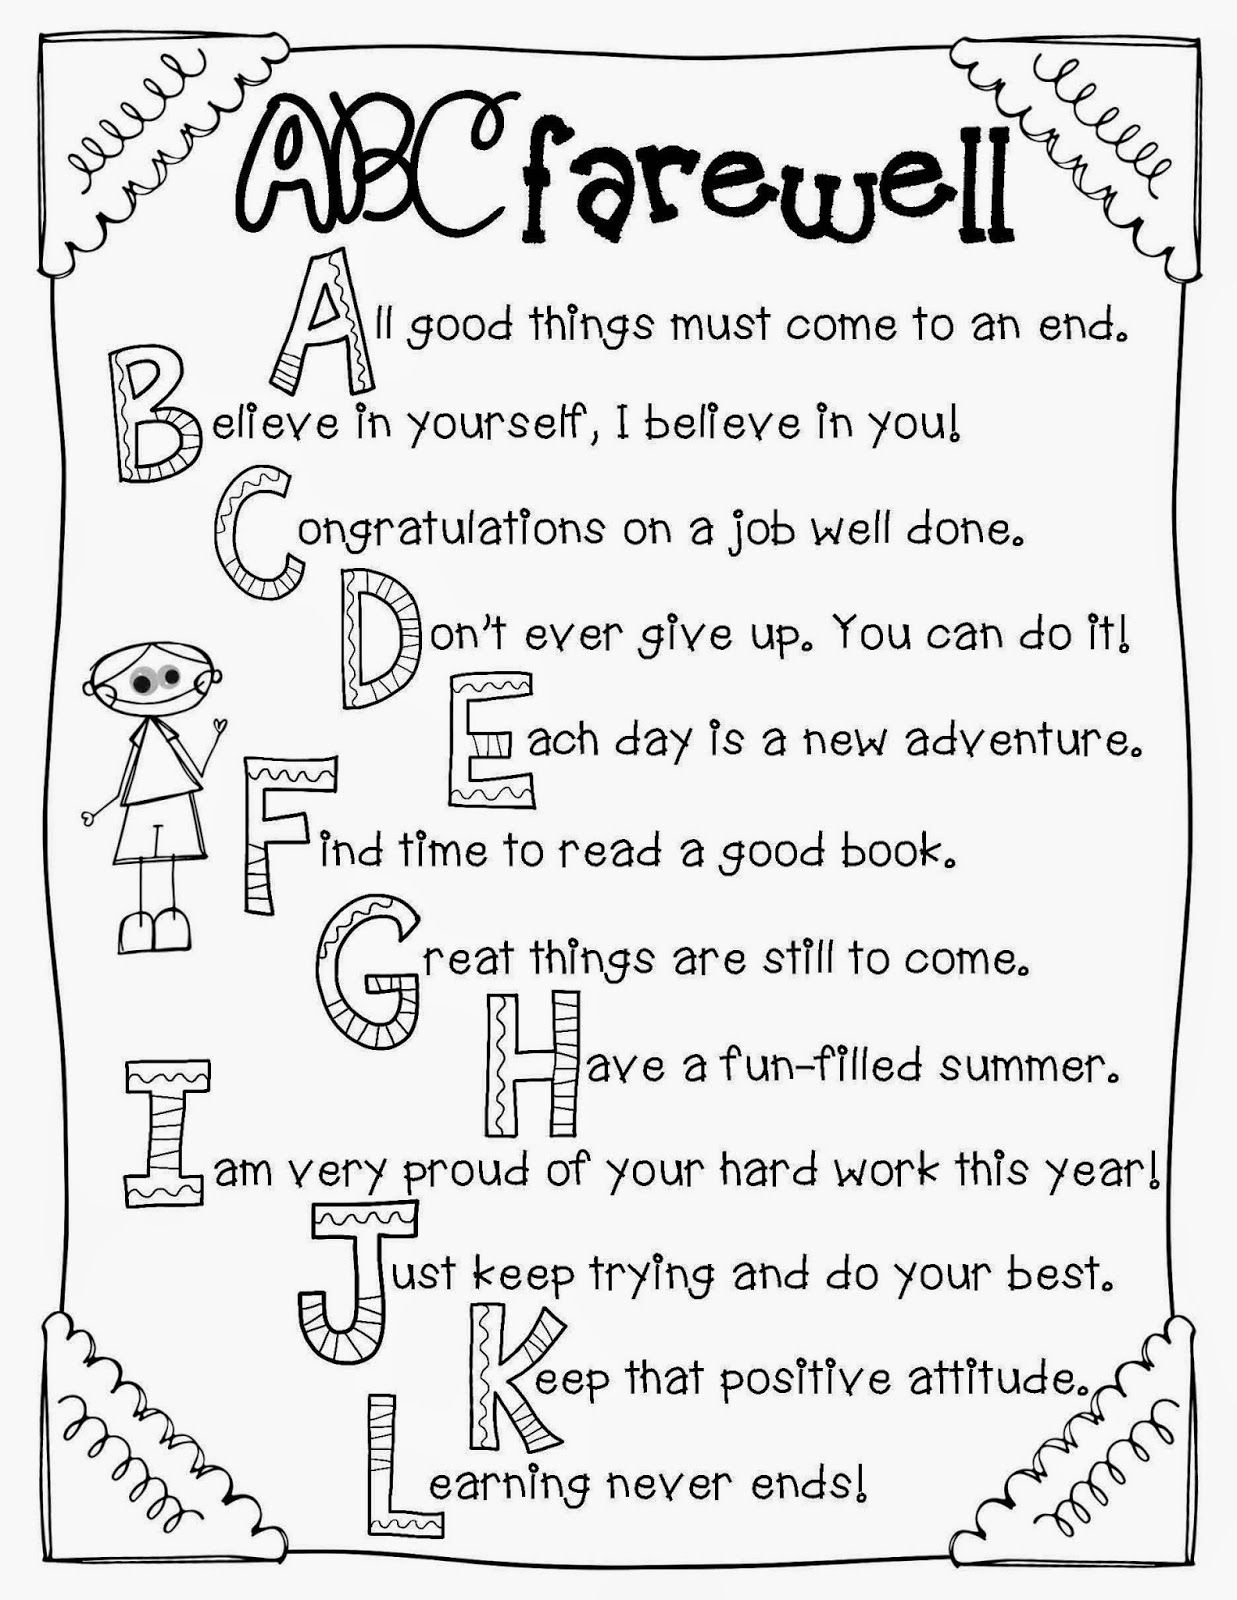 Clip art and abc farewell letter to students preschool